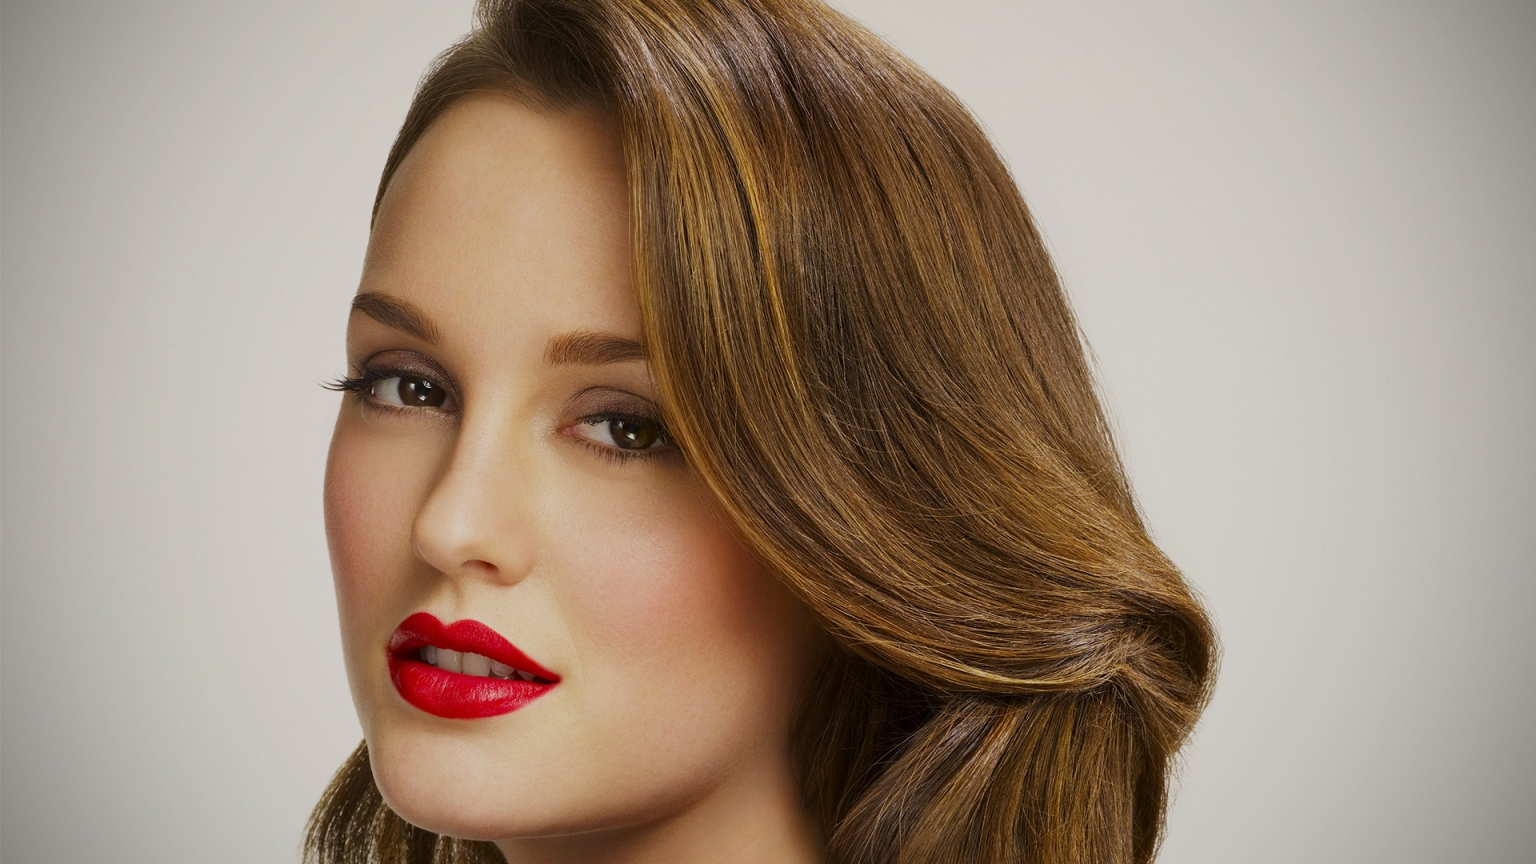 Leighton Meester Gorgeous for 1536 x 864 HDTV resolution